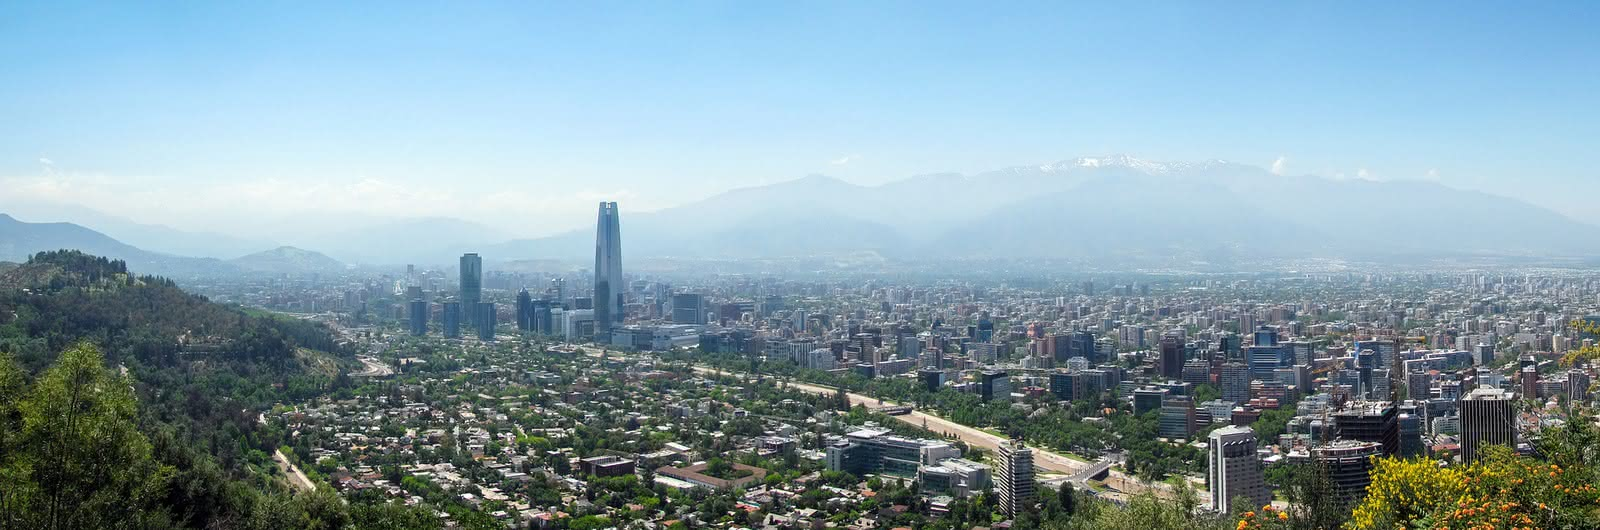 santiago chile header